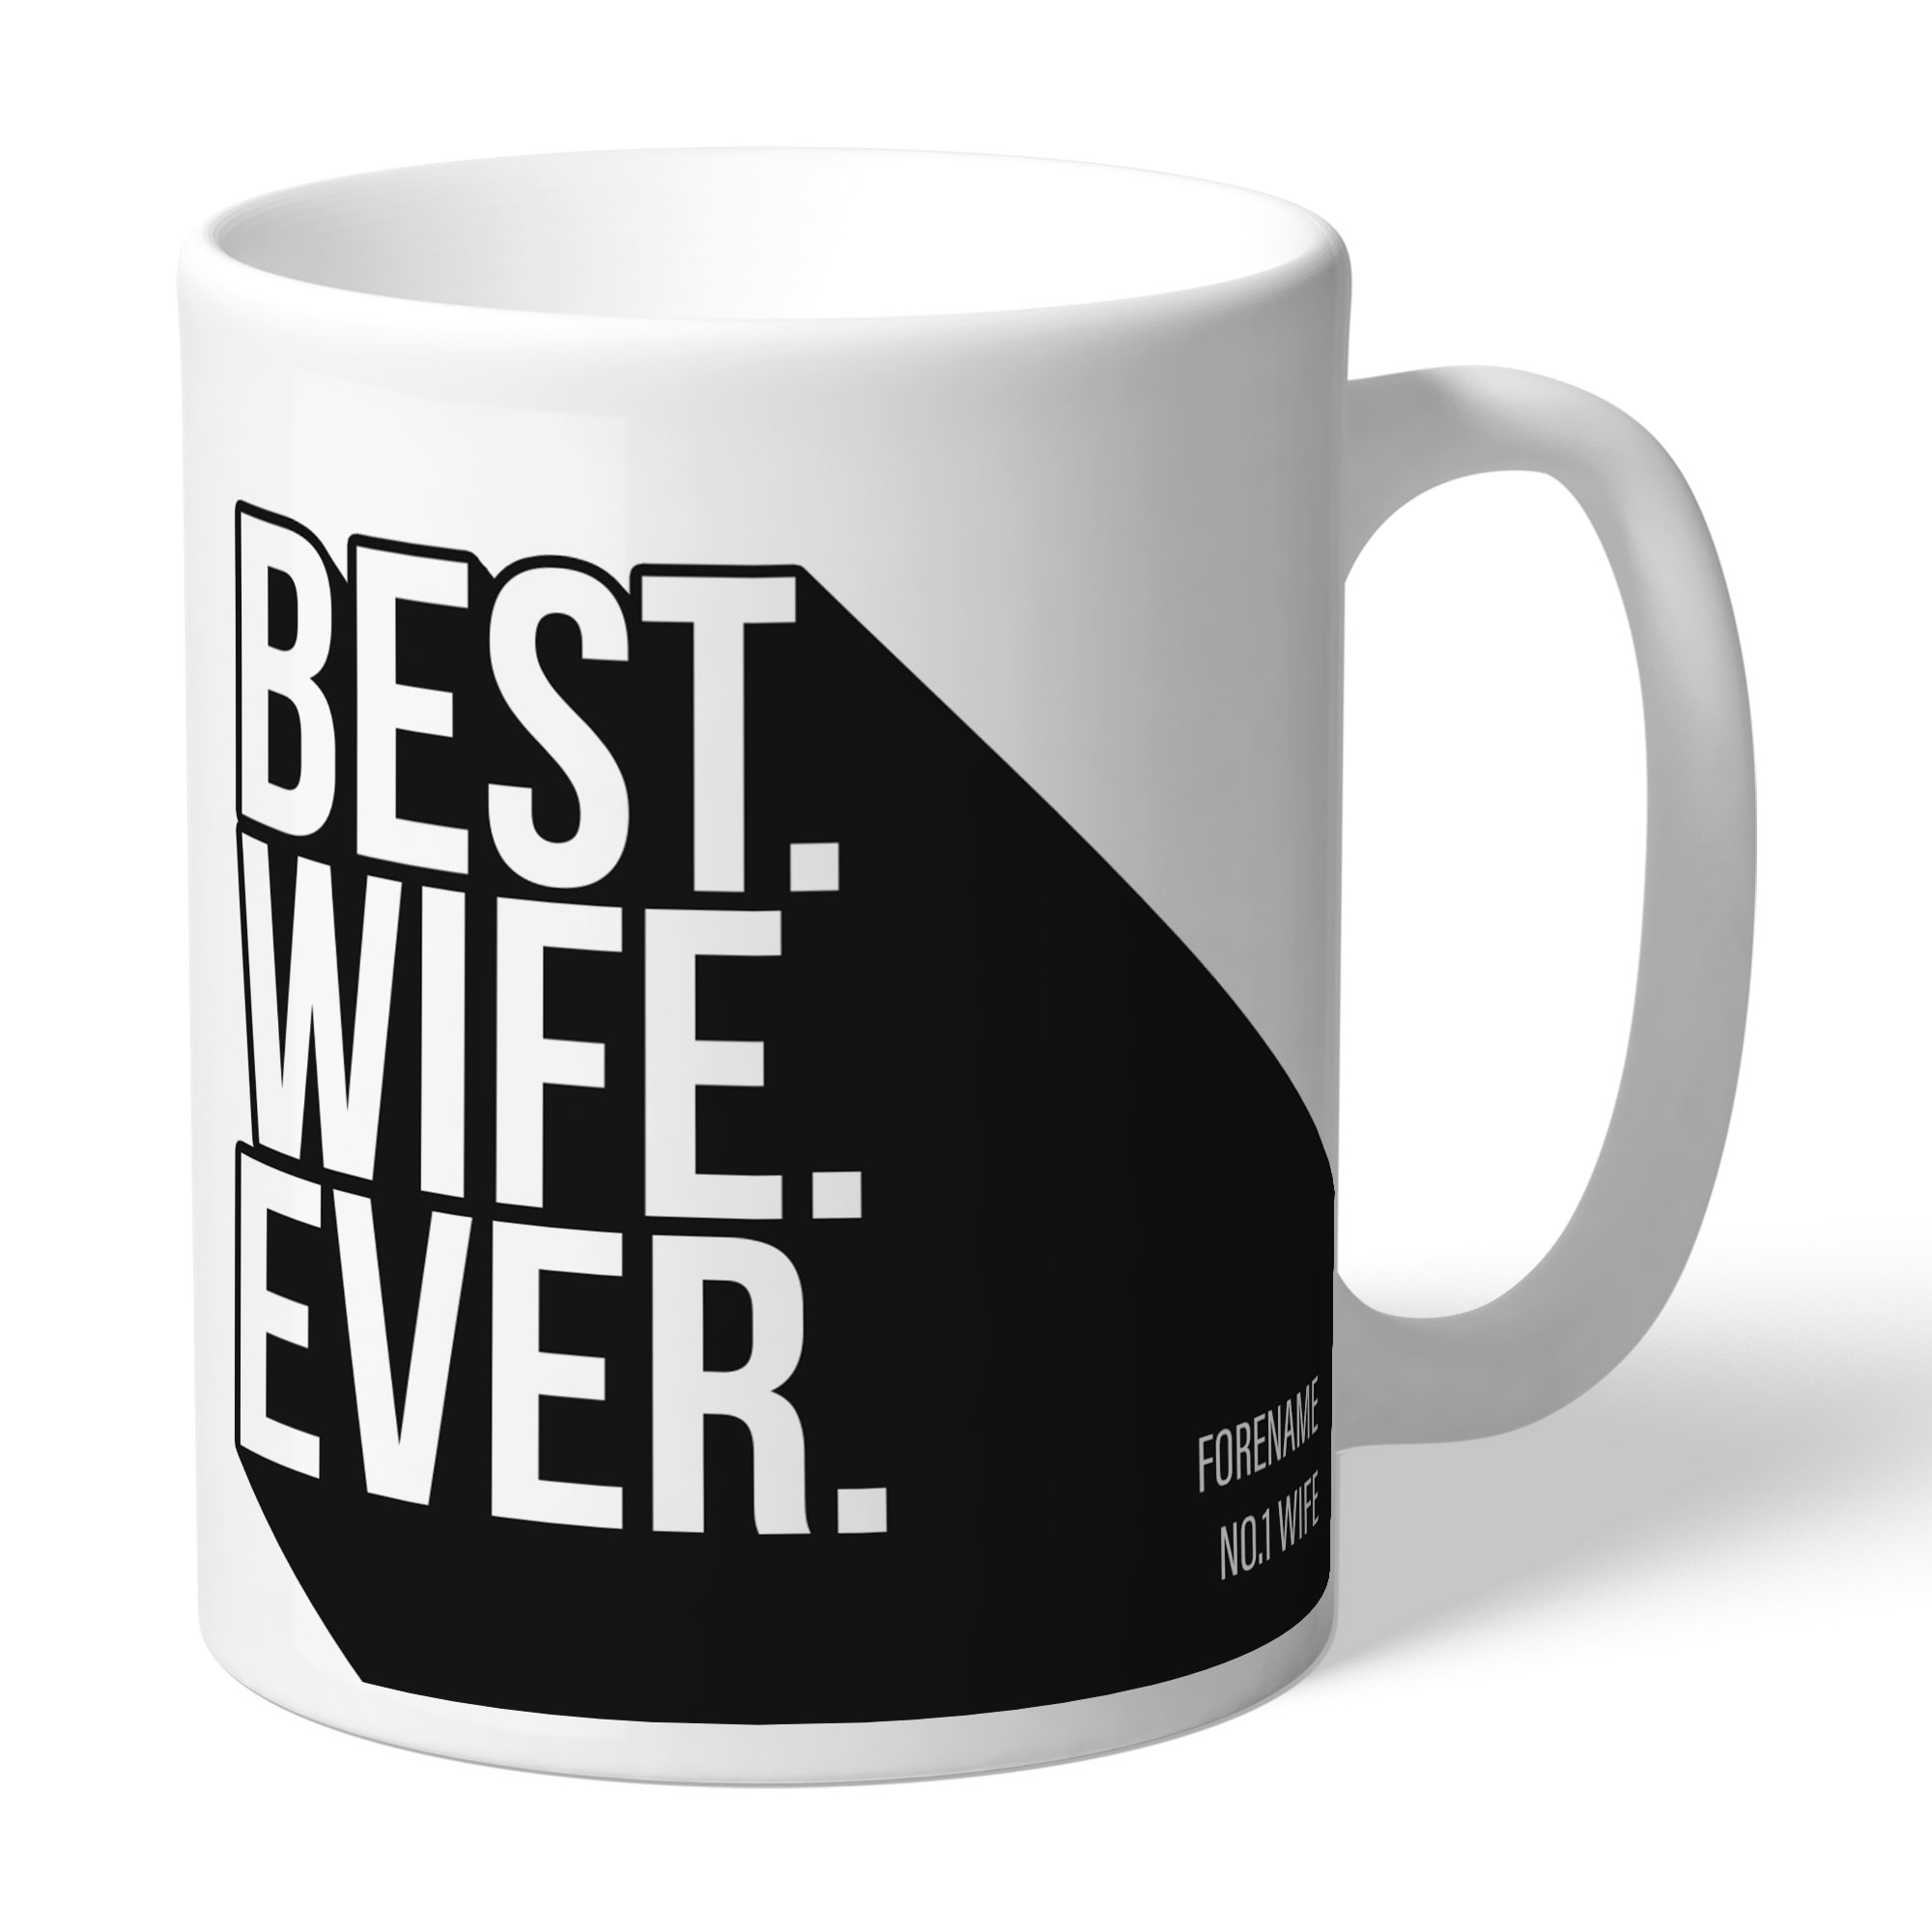 Swansea City AFC Best Wife Ever Mug